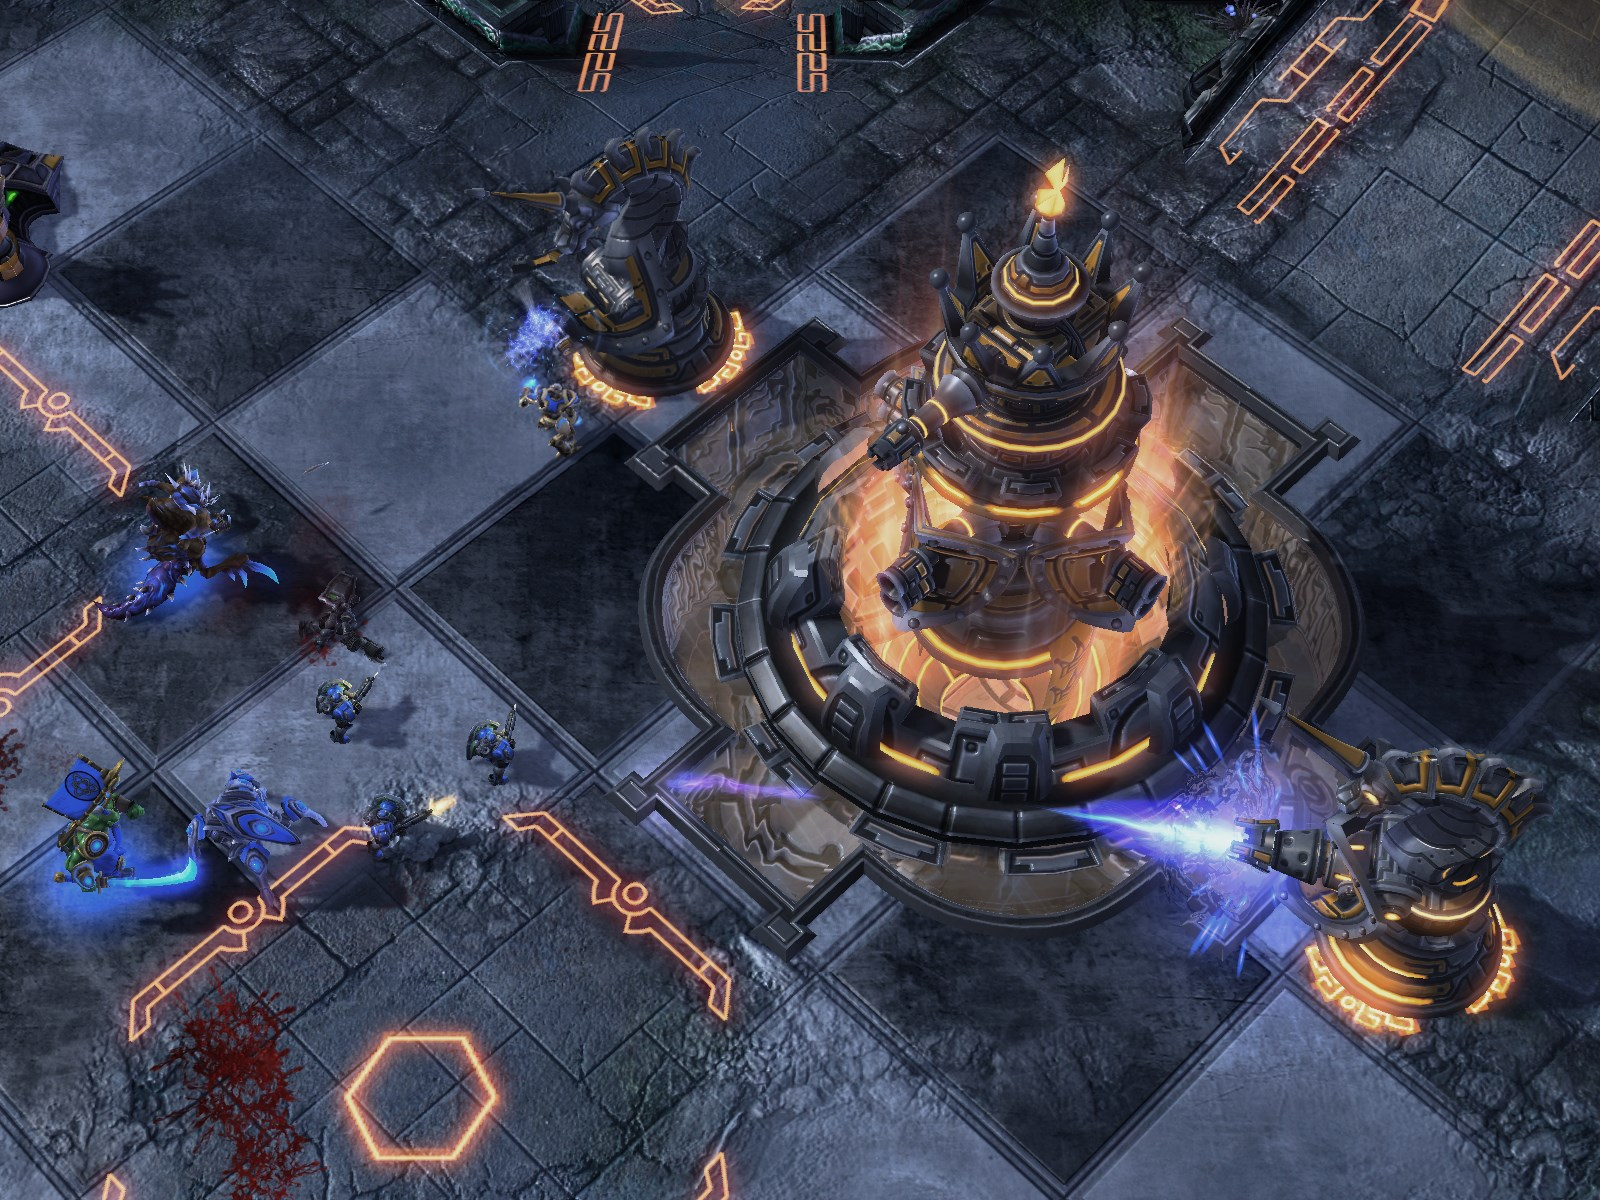 Blizzard set out to make a StarCraft mod, and instead